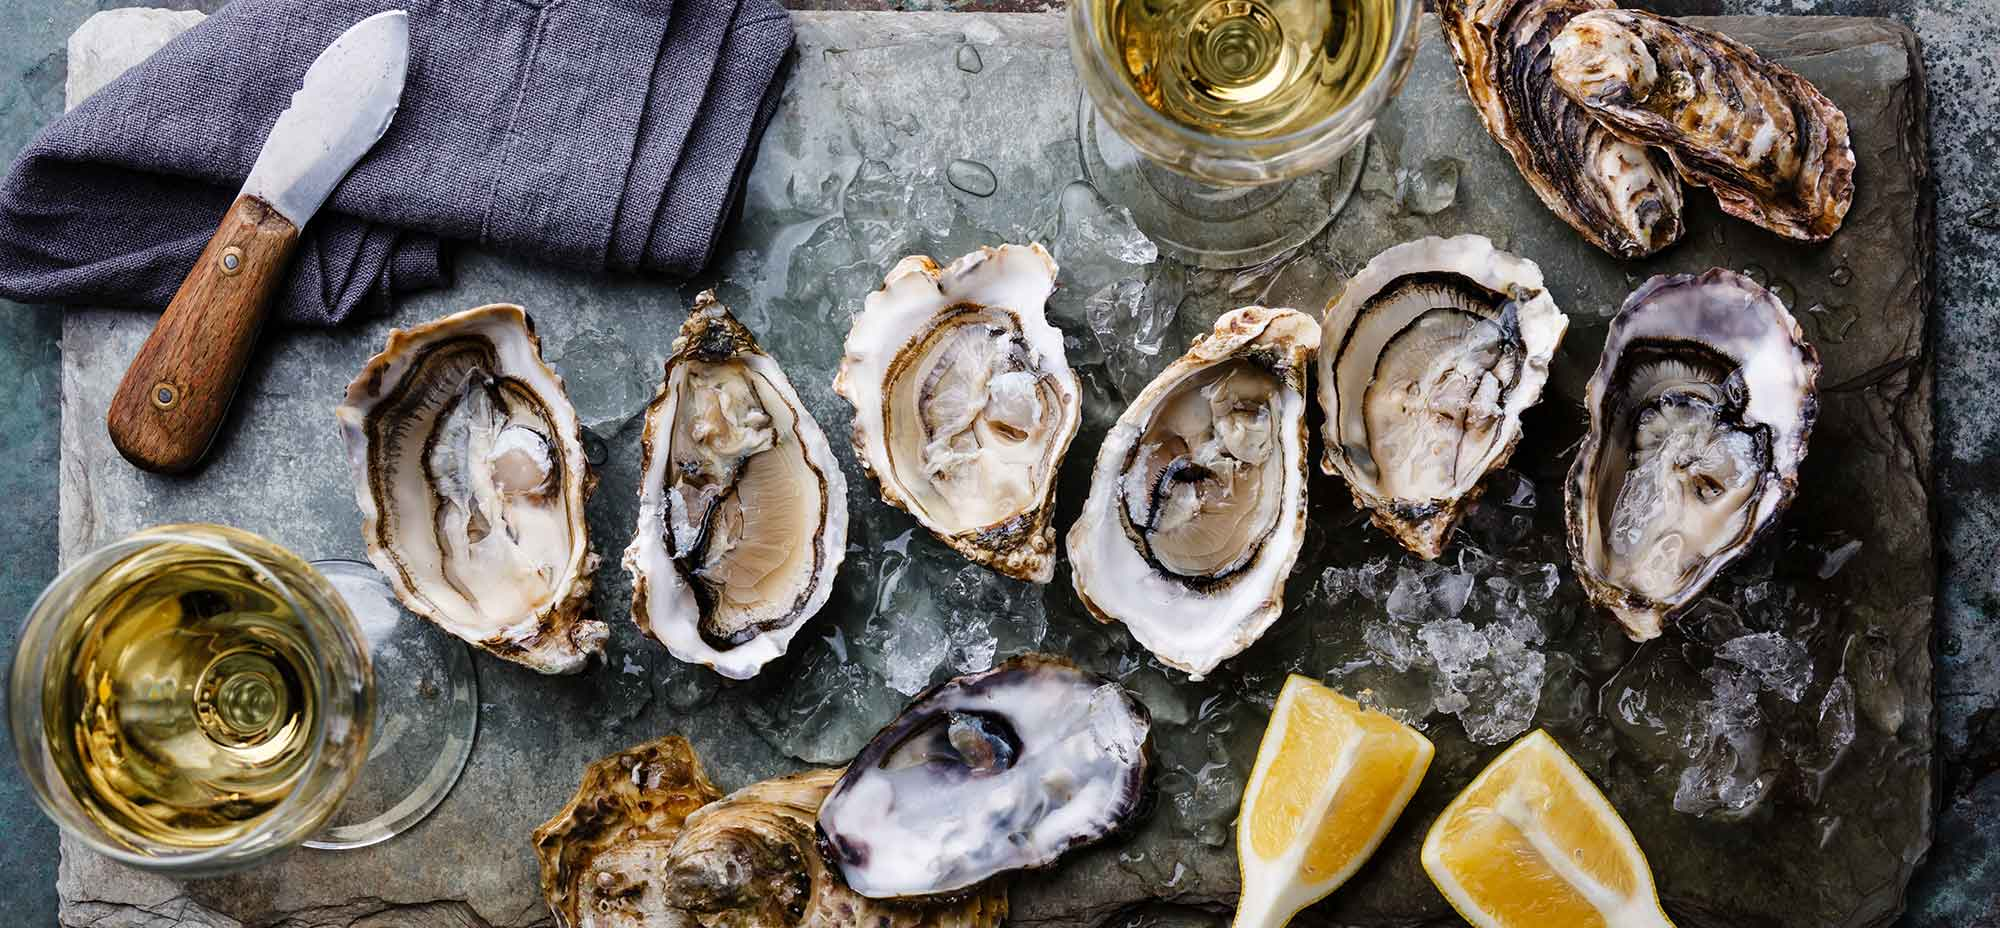 Image is of oysters ready to be served